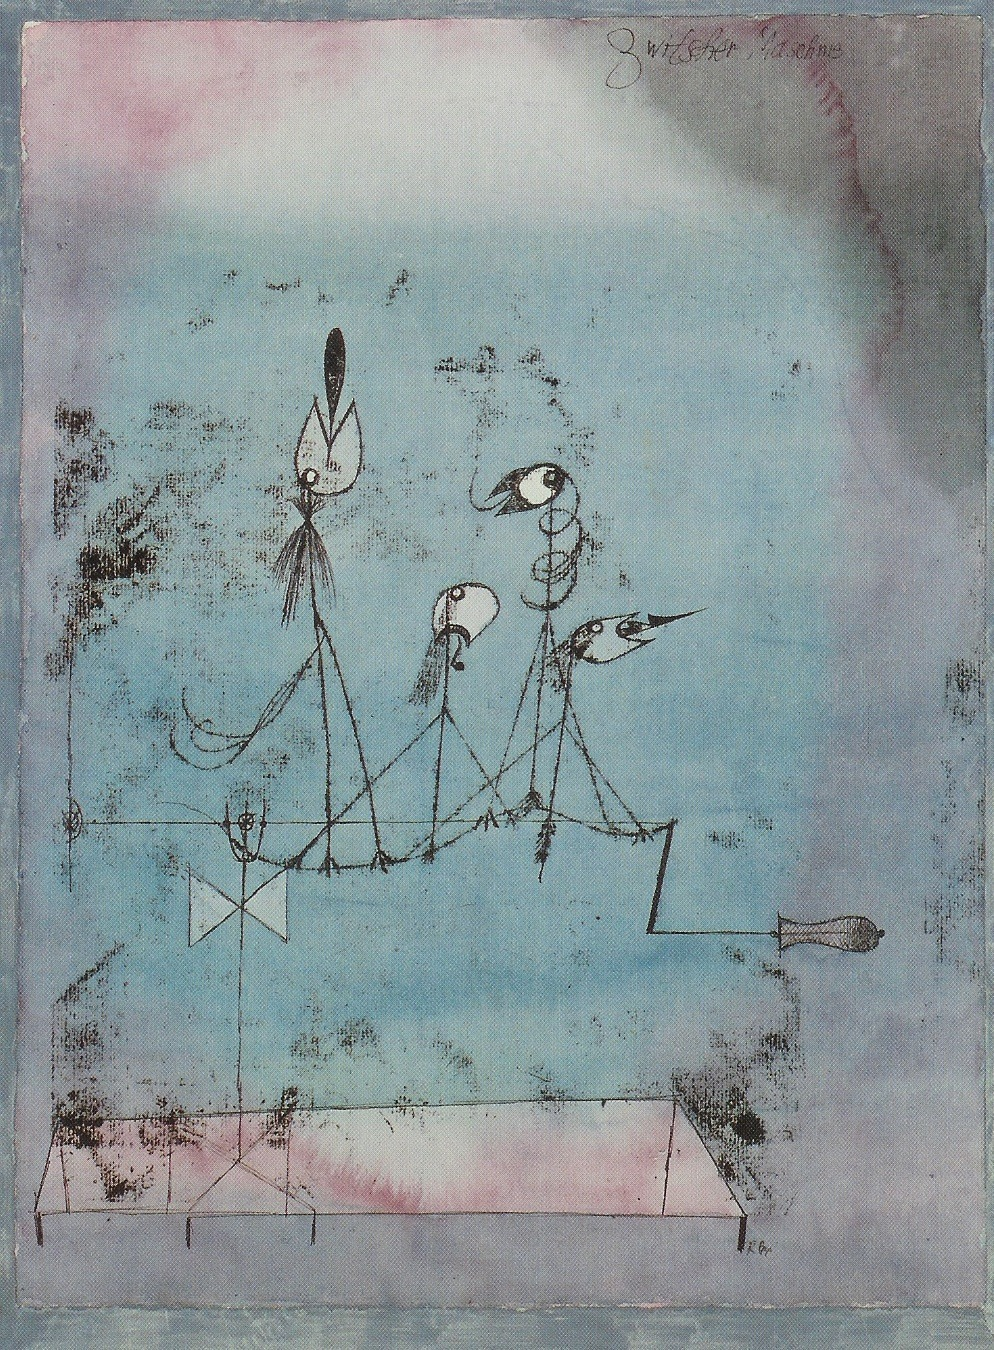 Music and Art: Klee